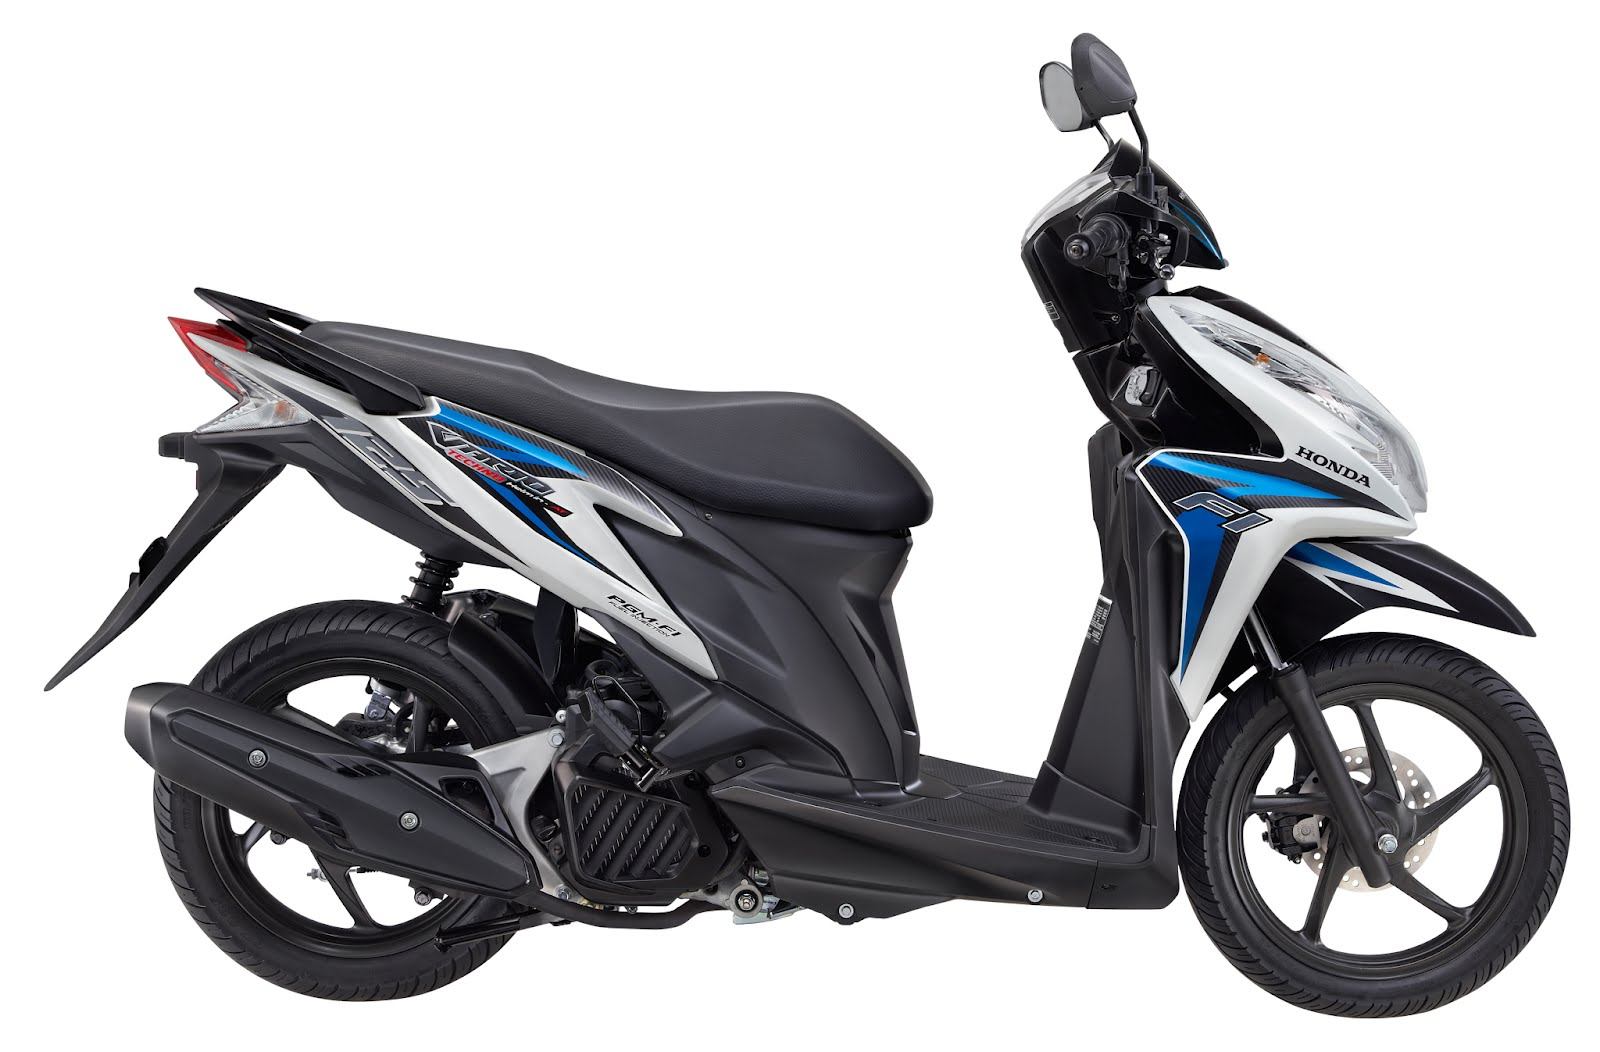 Yamaha Motor Corporation Honda Vario Now With Fuel